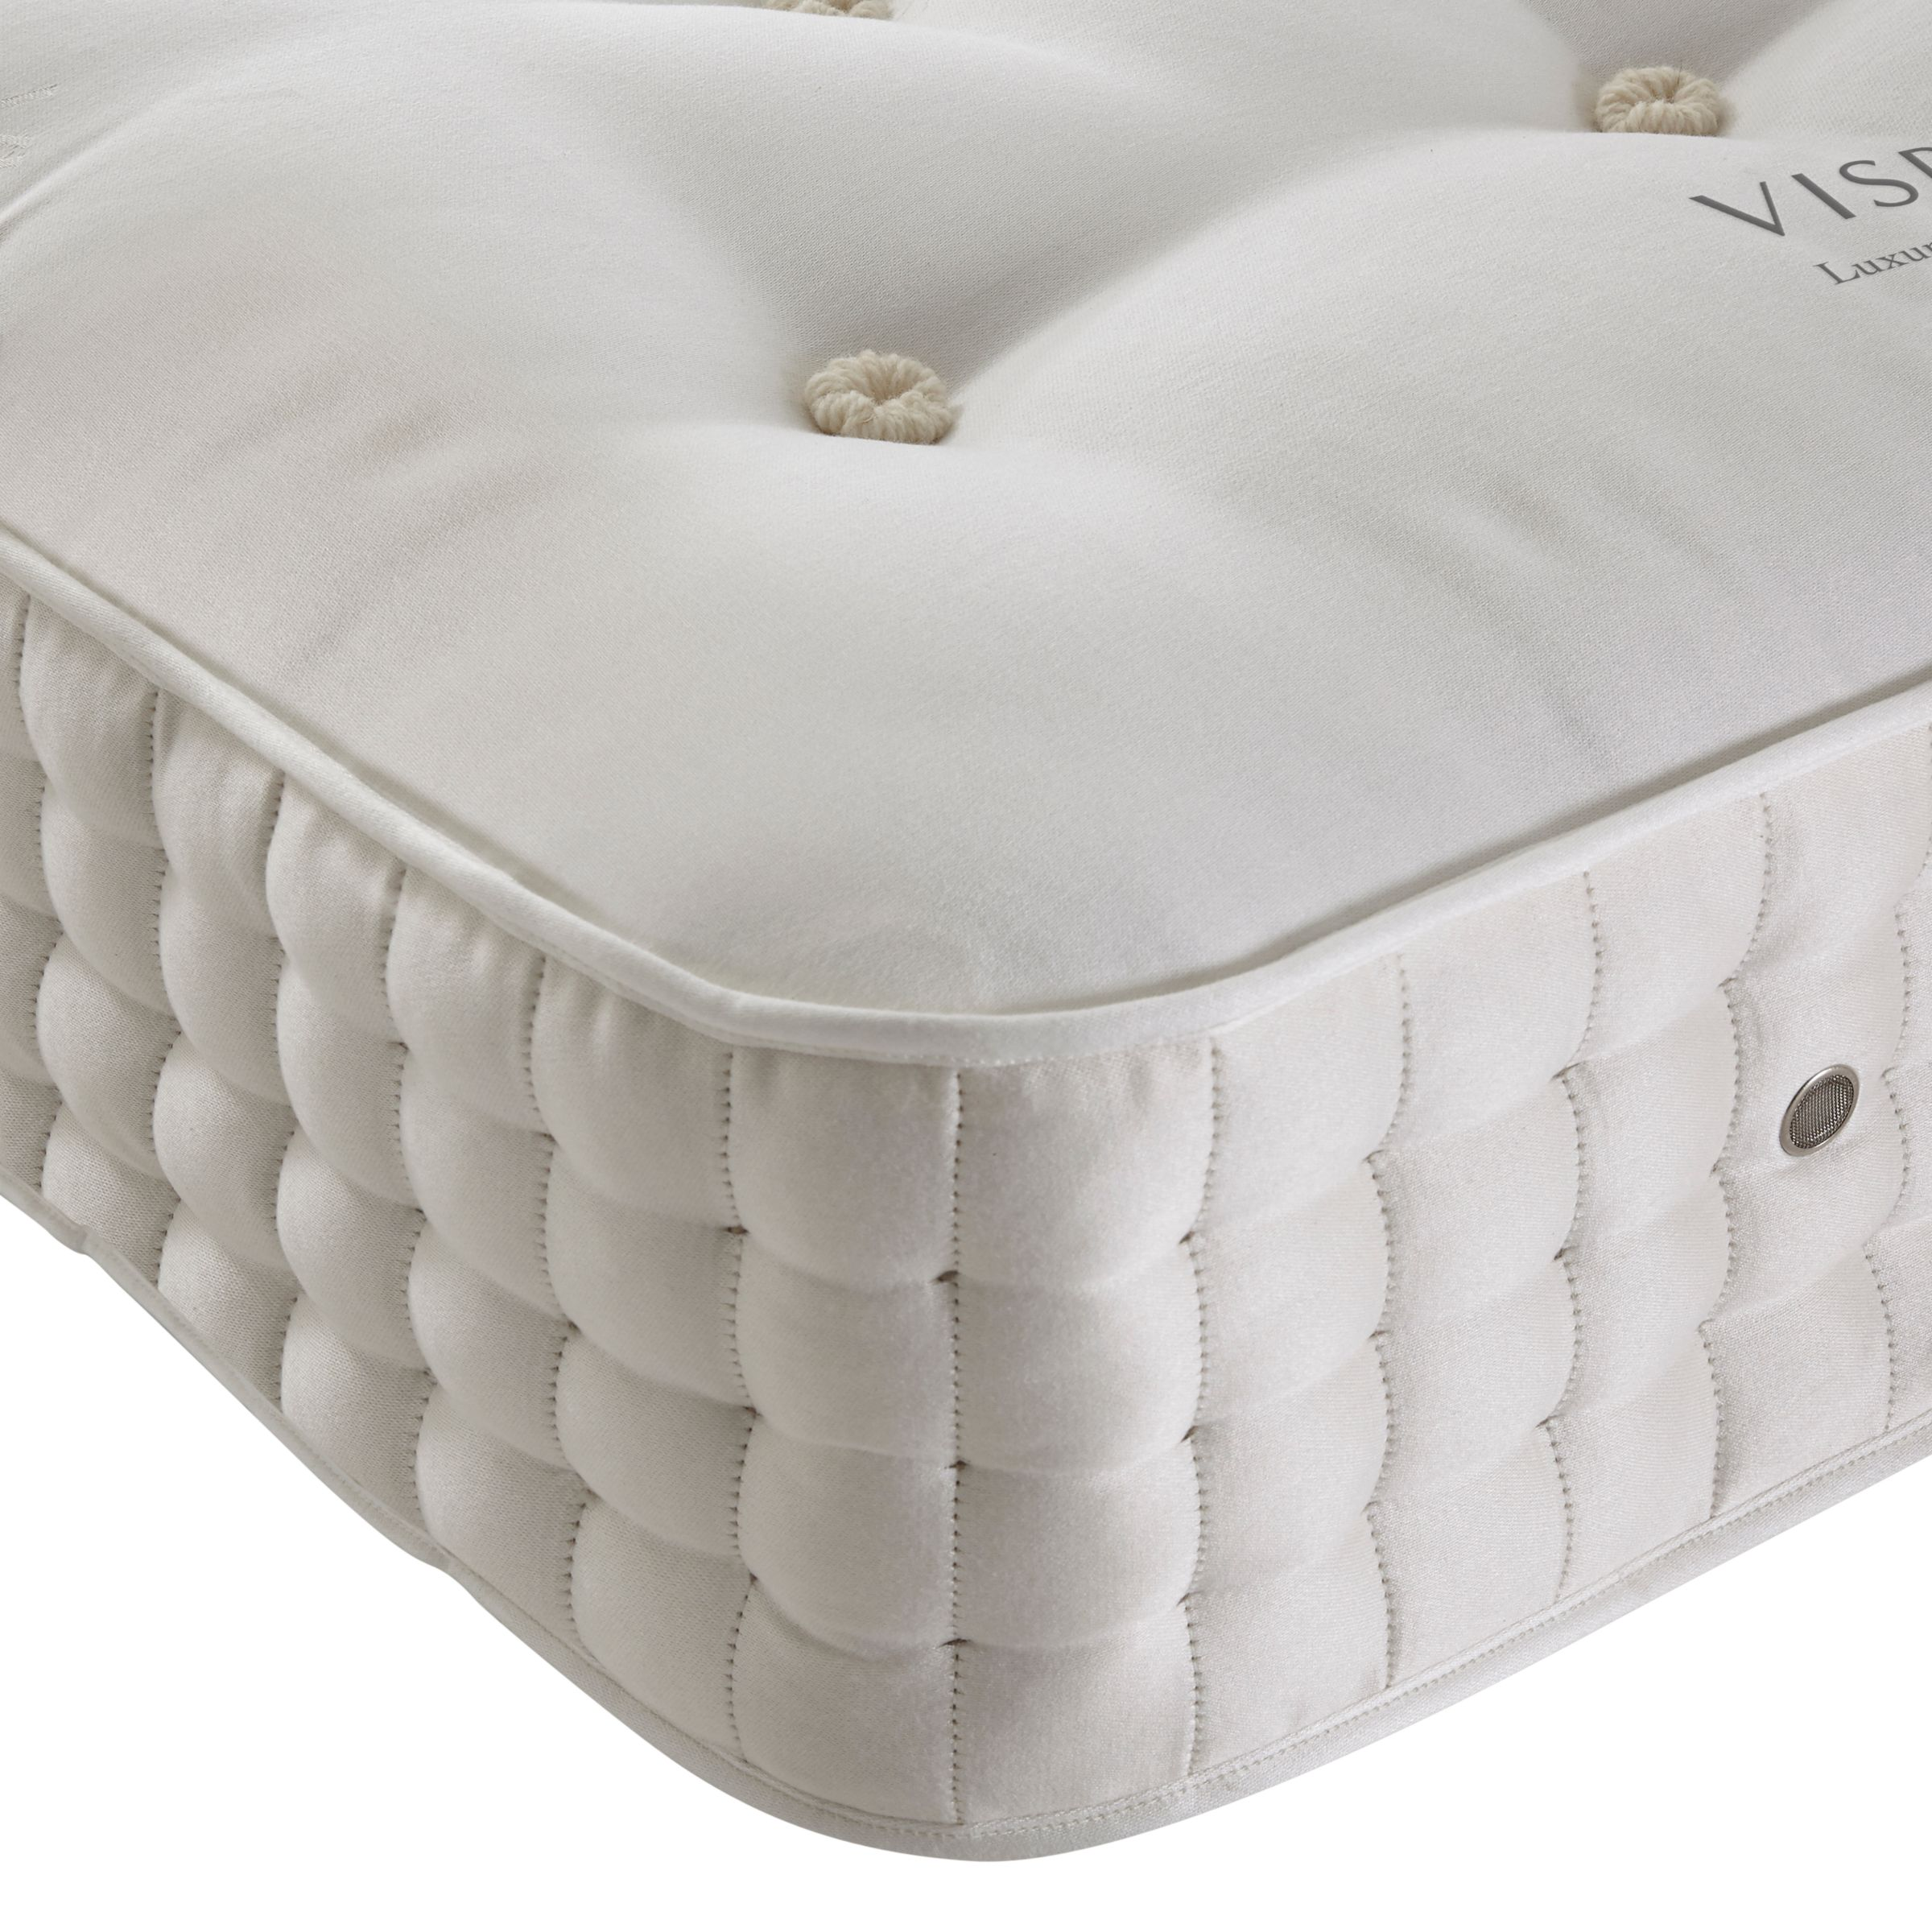 Vi-Spring Salcombe Superb Mattress, Emperor